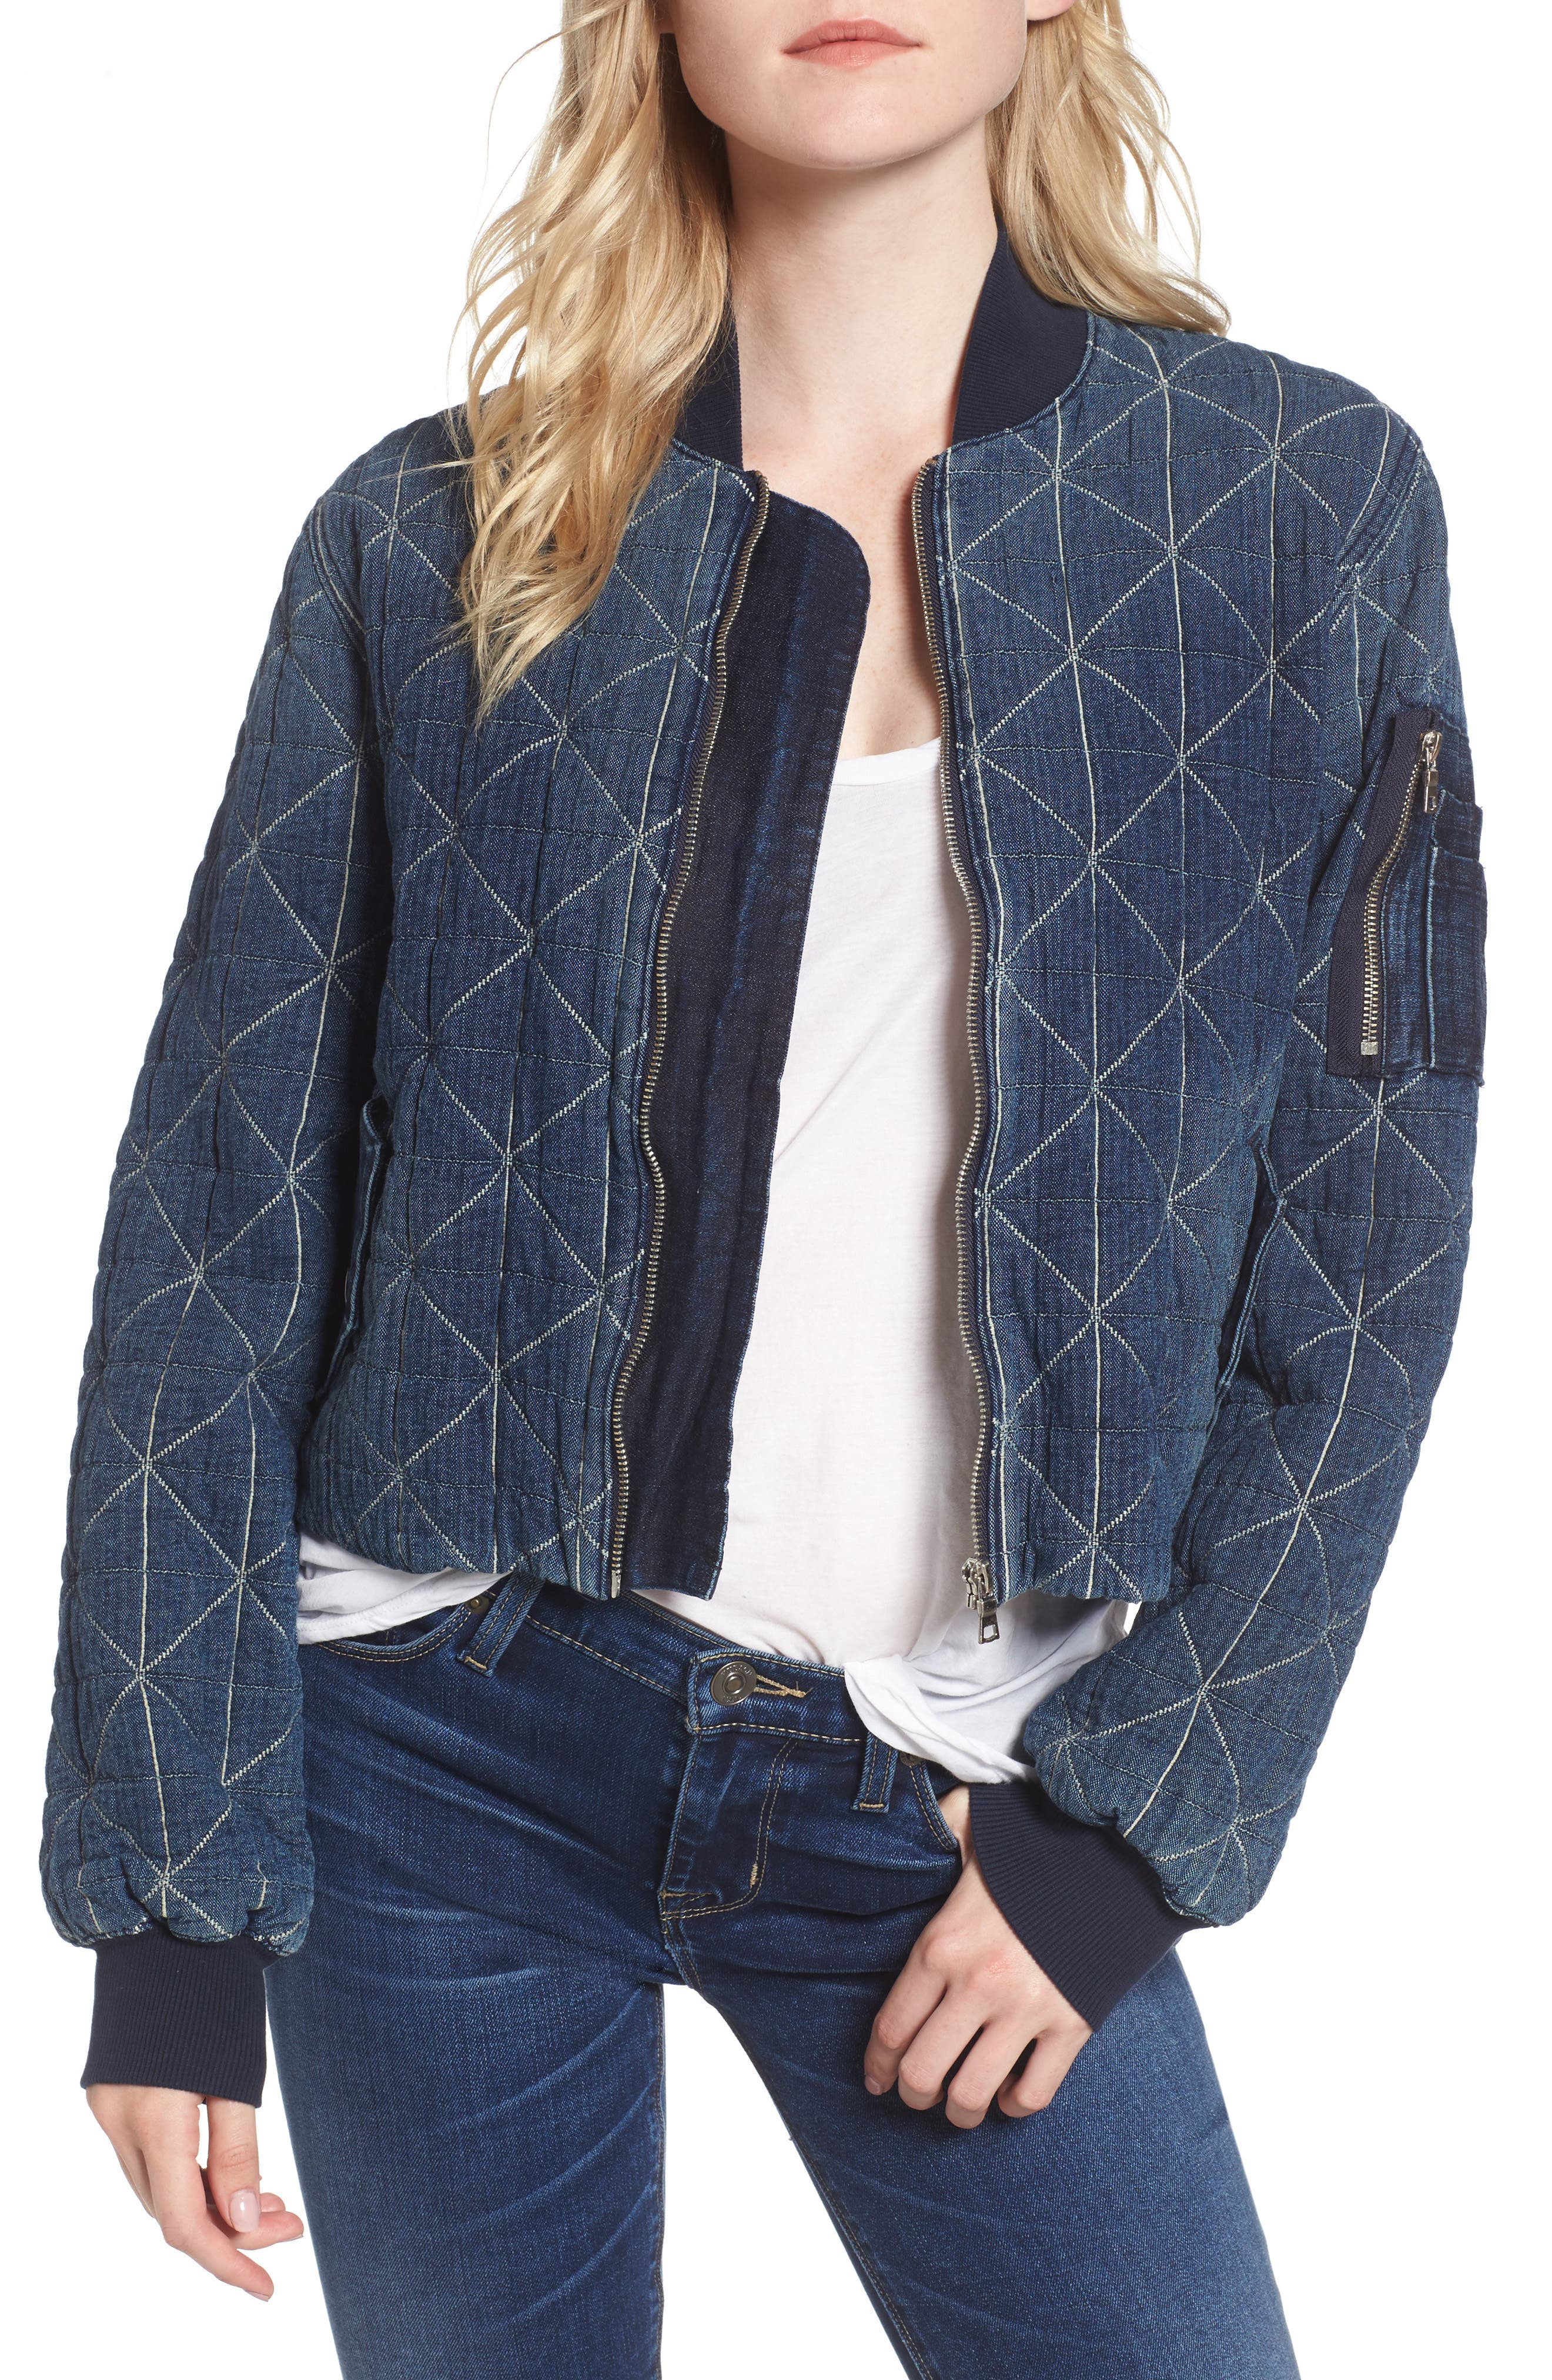 Gene Quilted Bomber Jacket,                             Main thumbnail 1, color,                             420